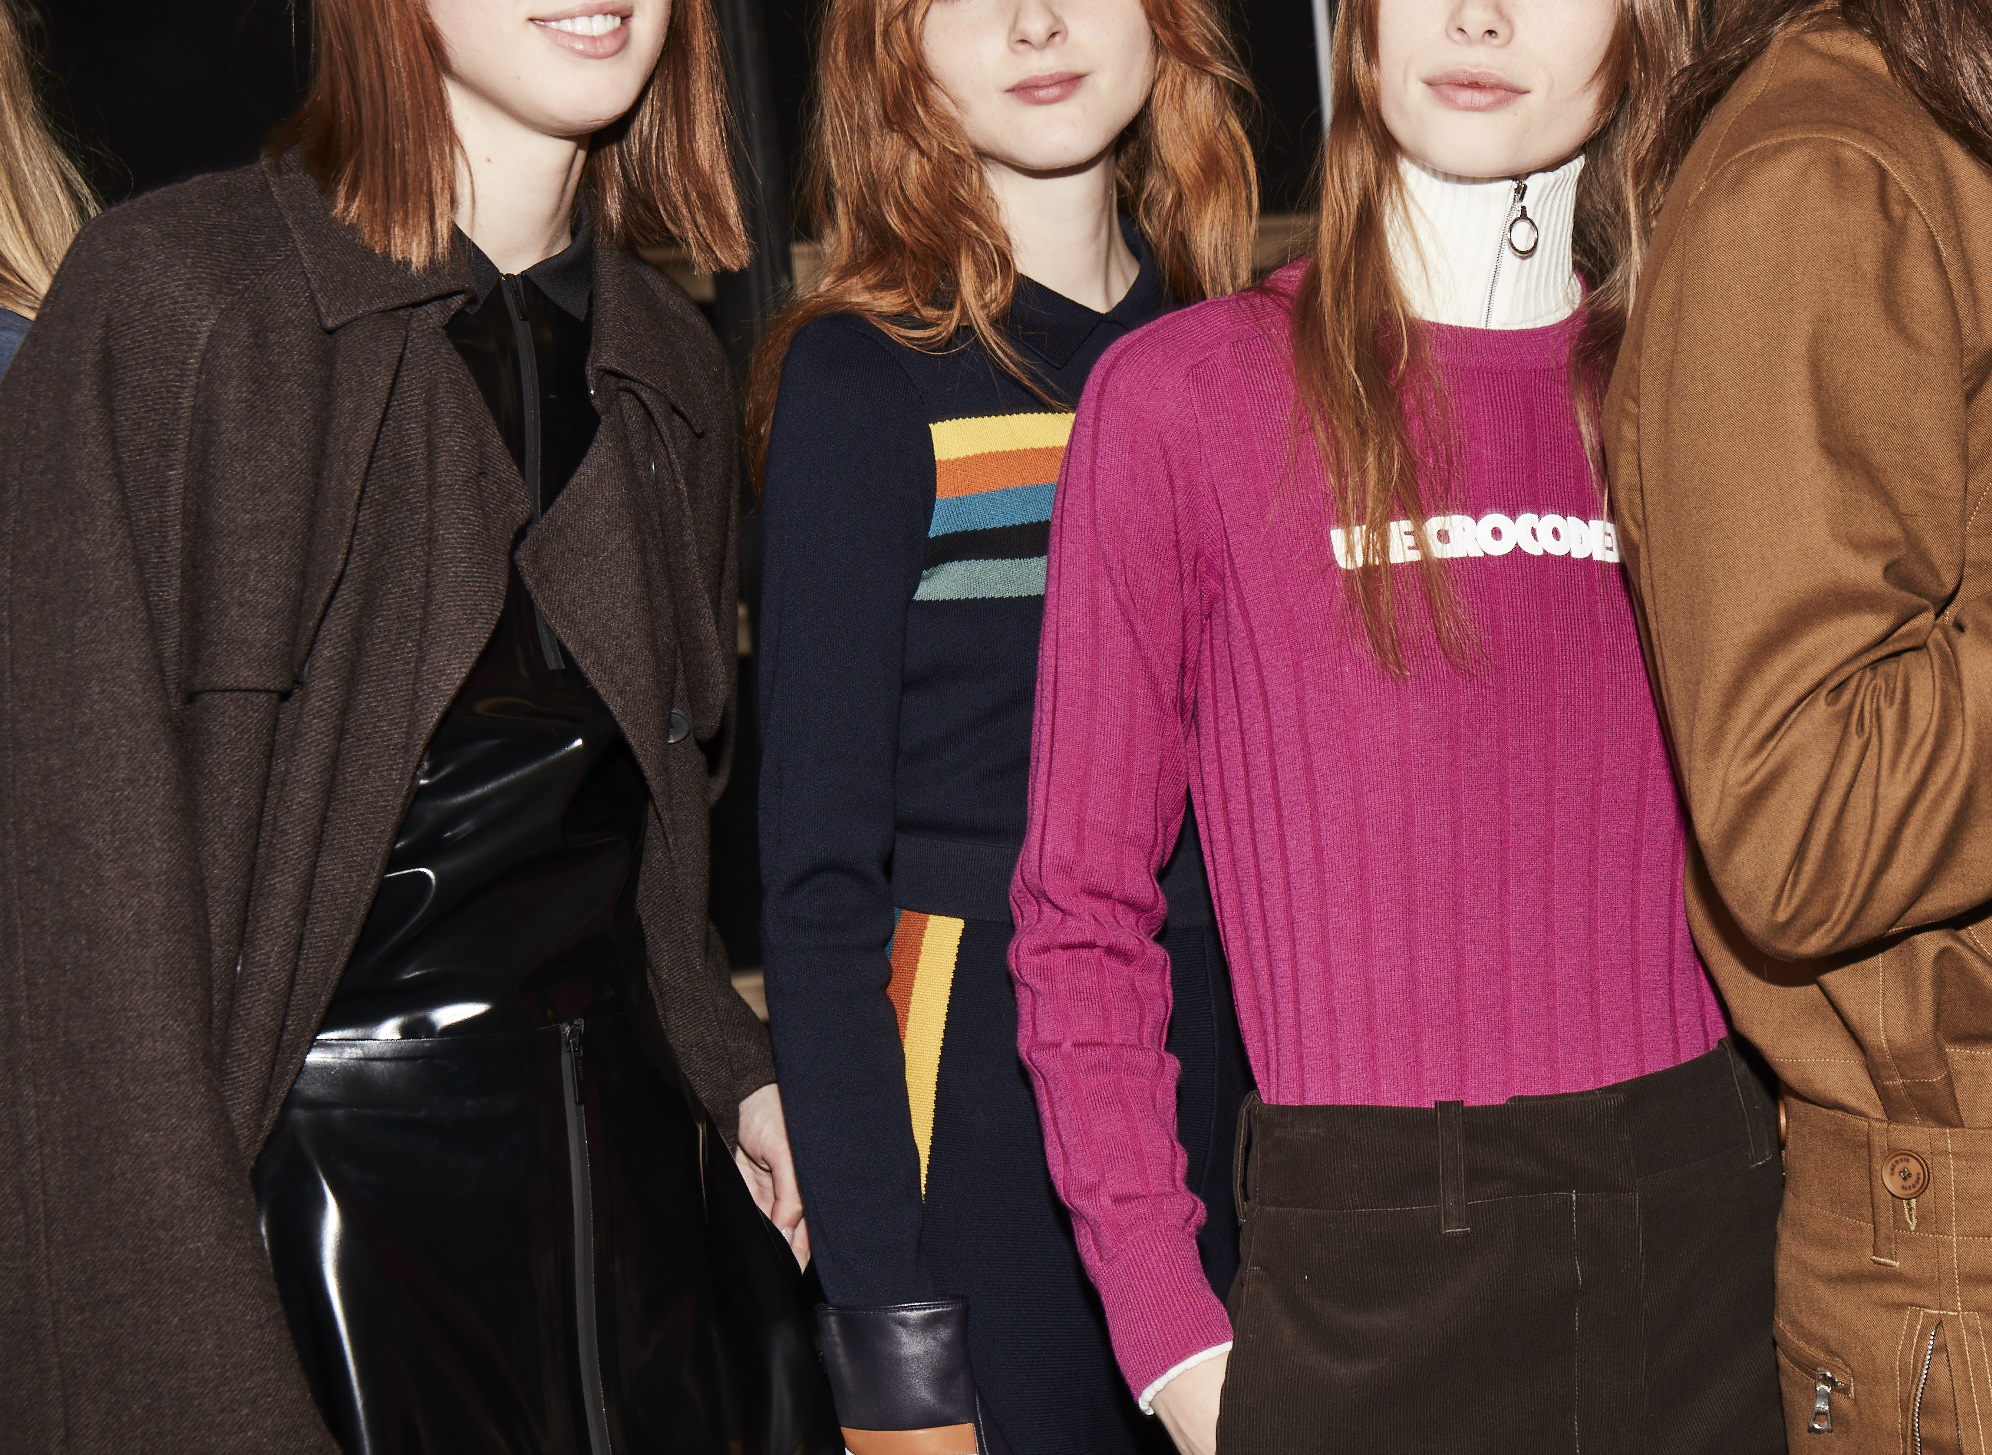 17_LACOSTE_Fall_Winter_16_Backstage.jpg